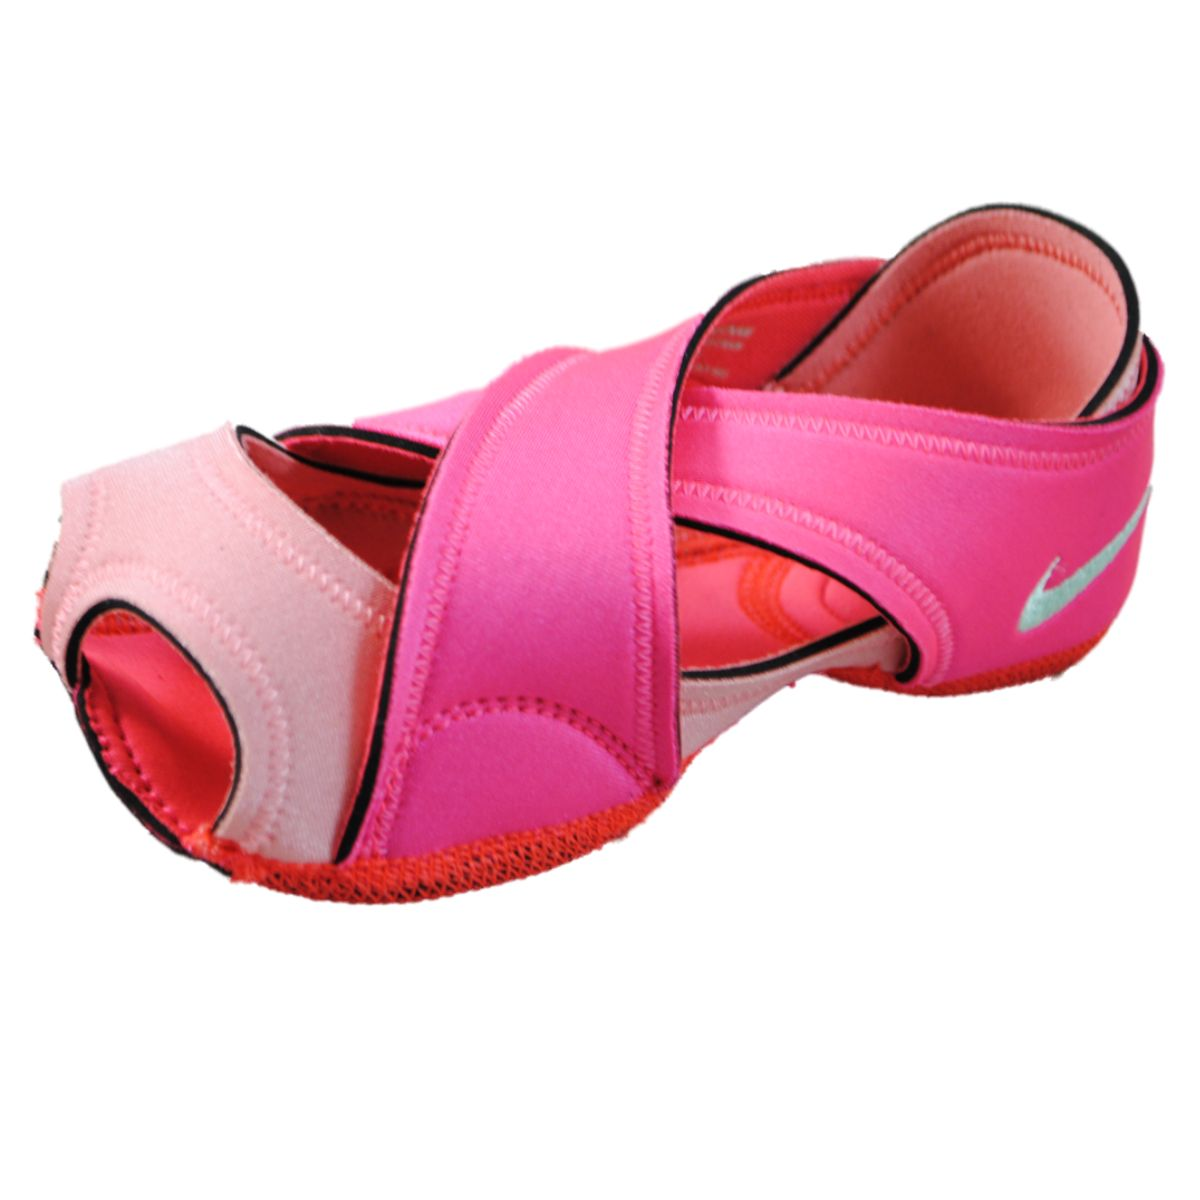 Nike Ballet Wrap Shoes Size